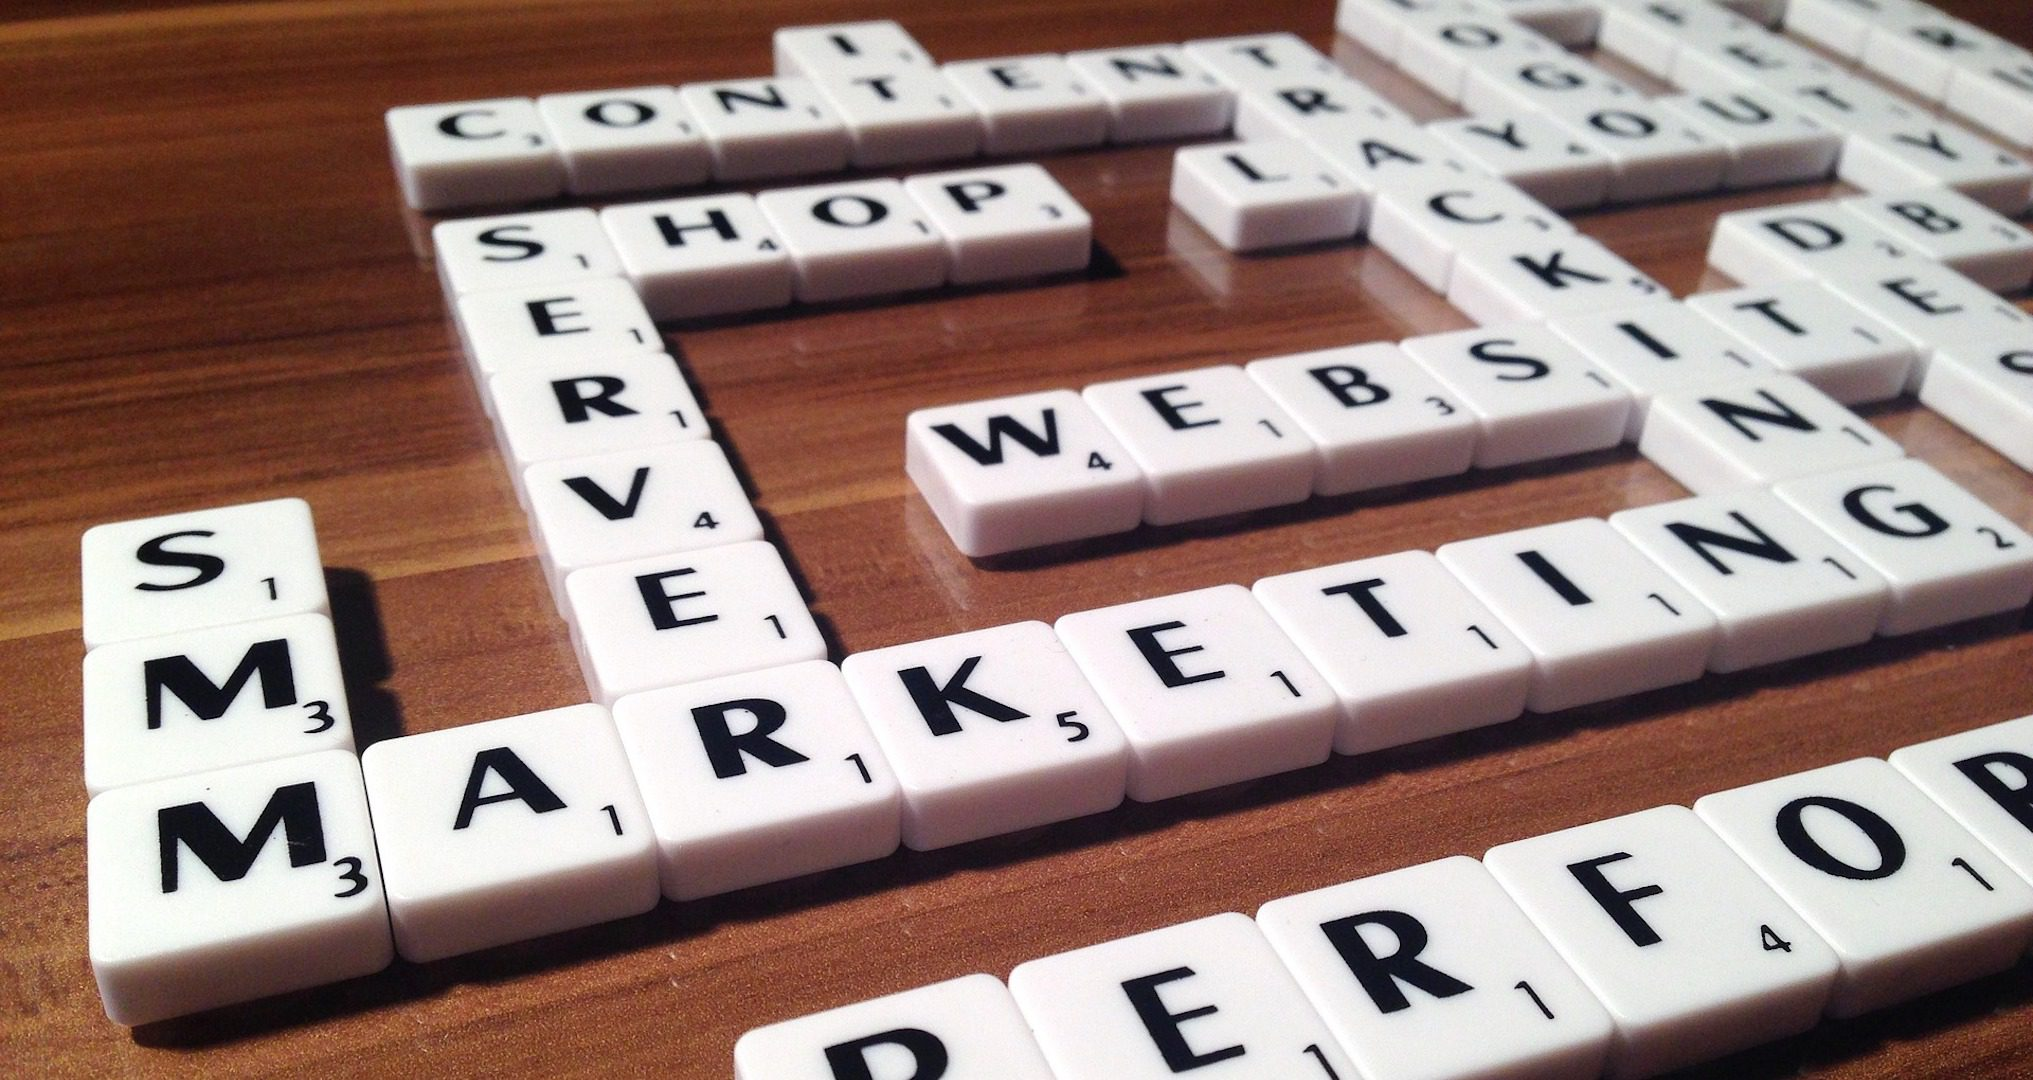 scrabble letters spelling out web design and development words